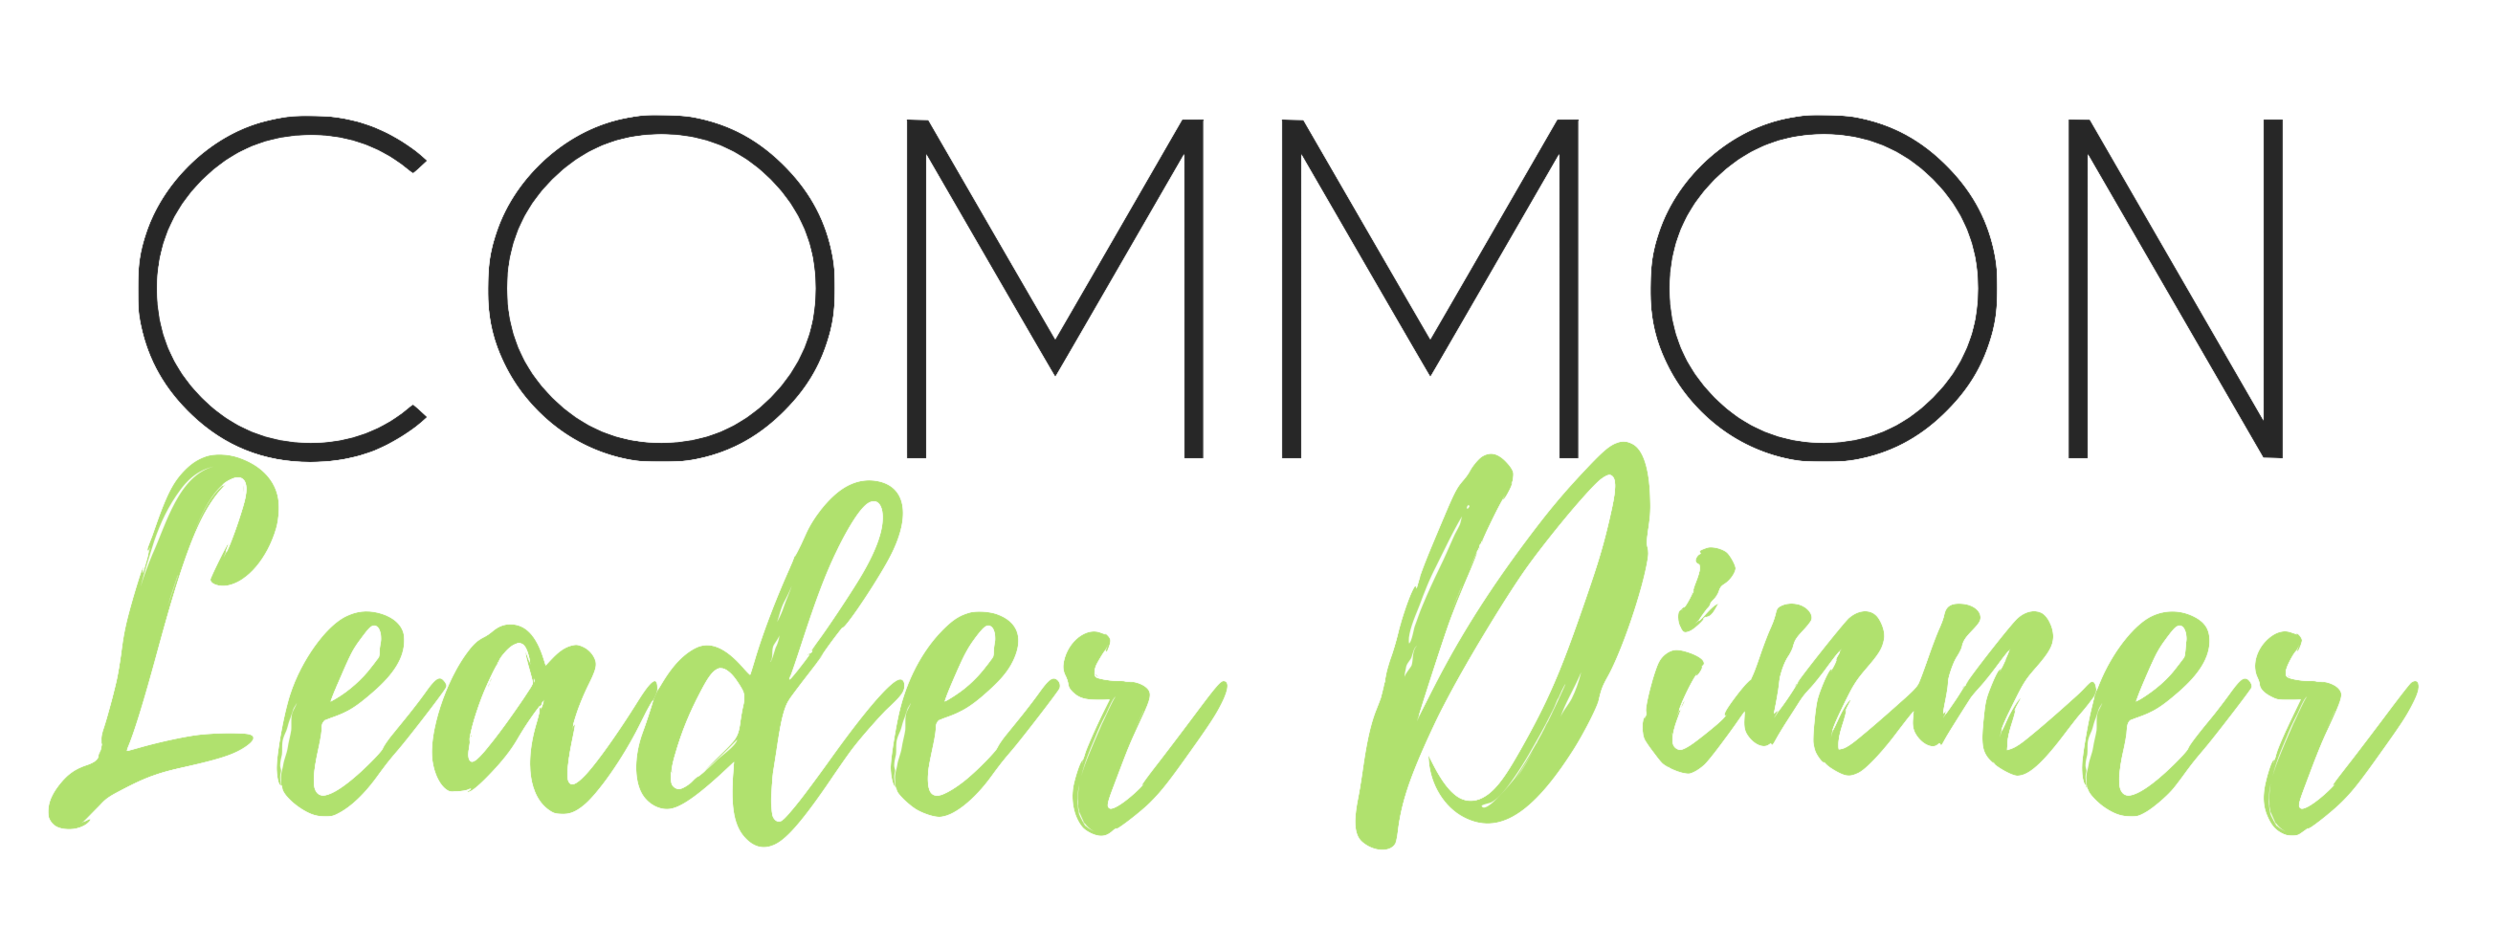 Common Leader Dinner Logo.png